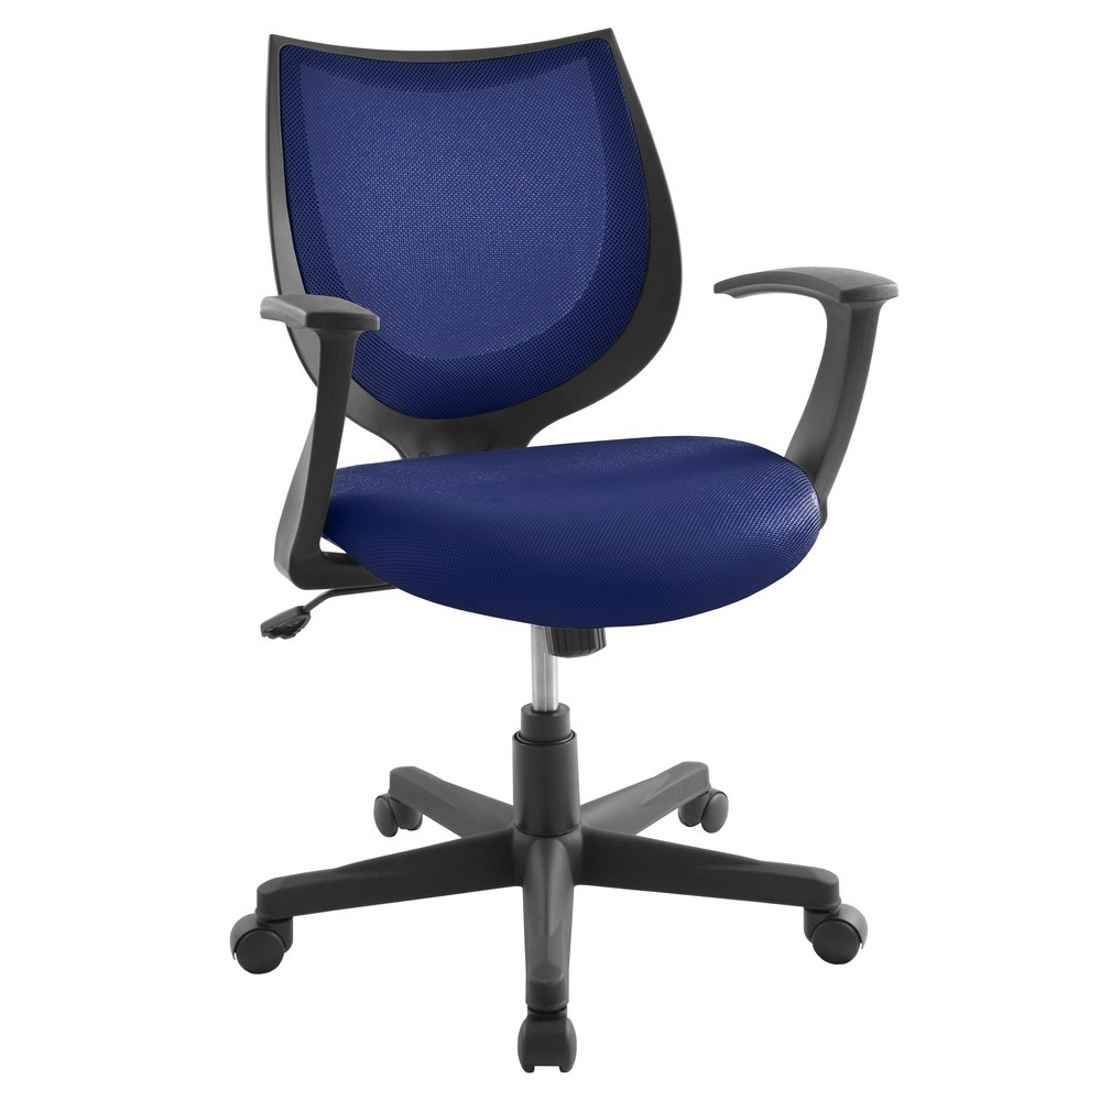 Blue Office Chair Blue Desk Chair For Home Office